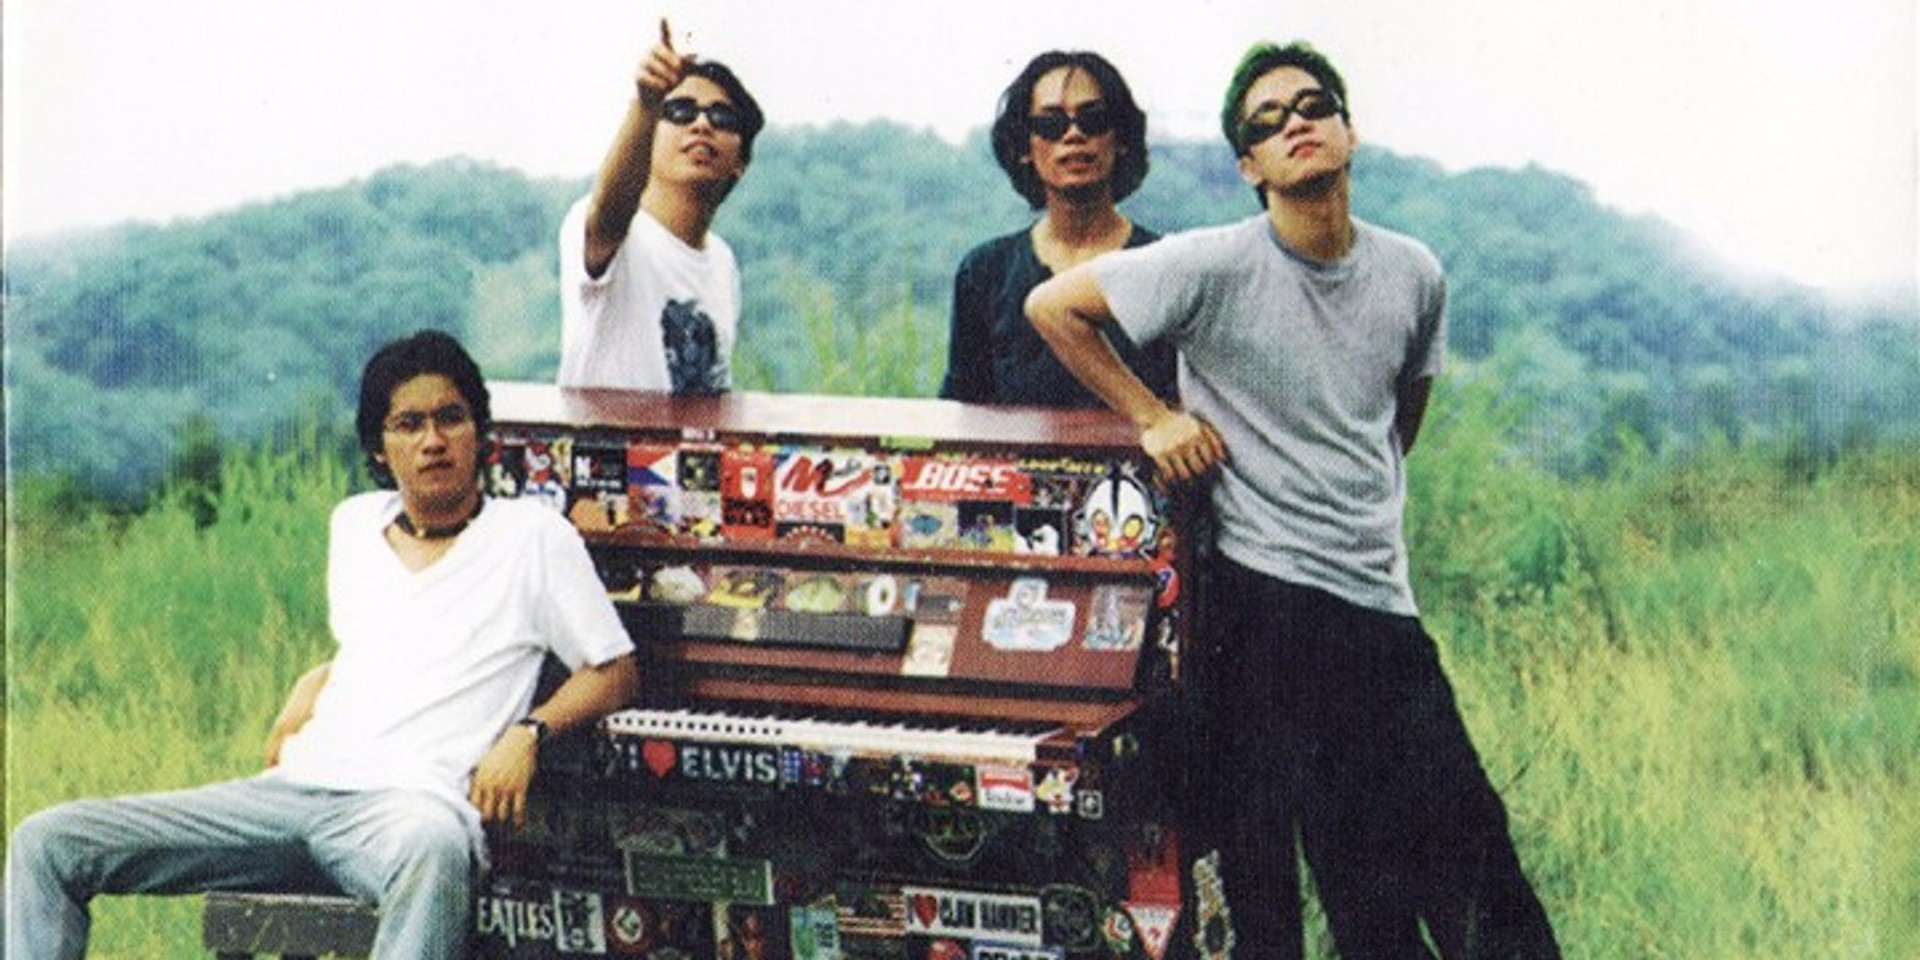 The Eraserheads celebrate 20 years of Sticker Happy with new Team Manila merch collection